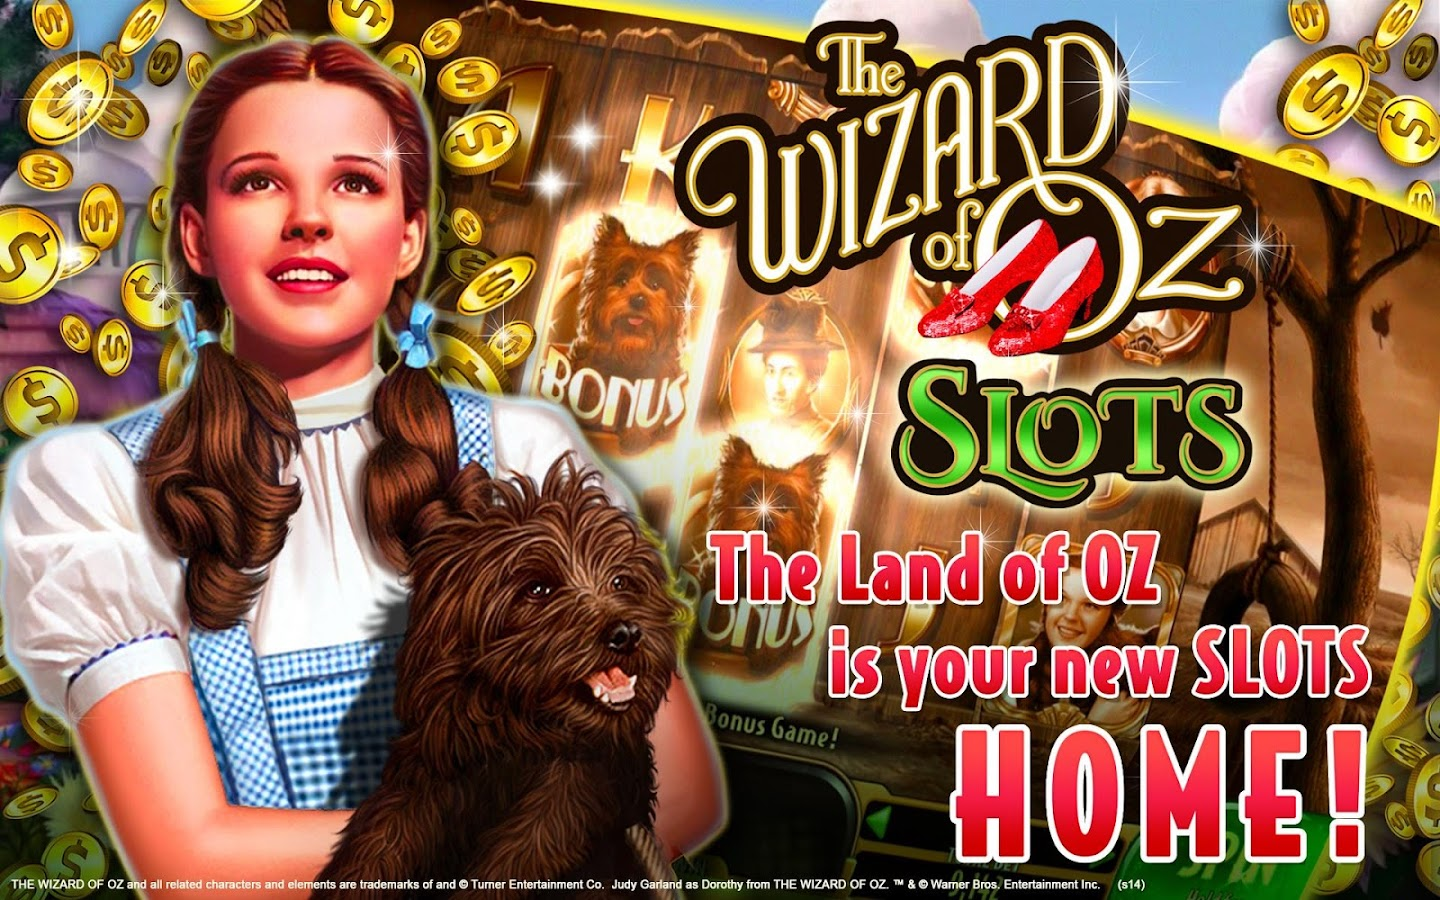 The Wizard of Oz 1939 film  Wikipedia